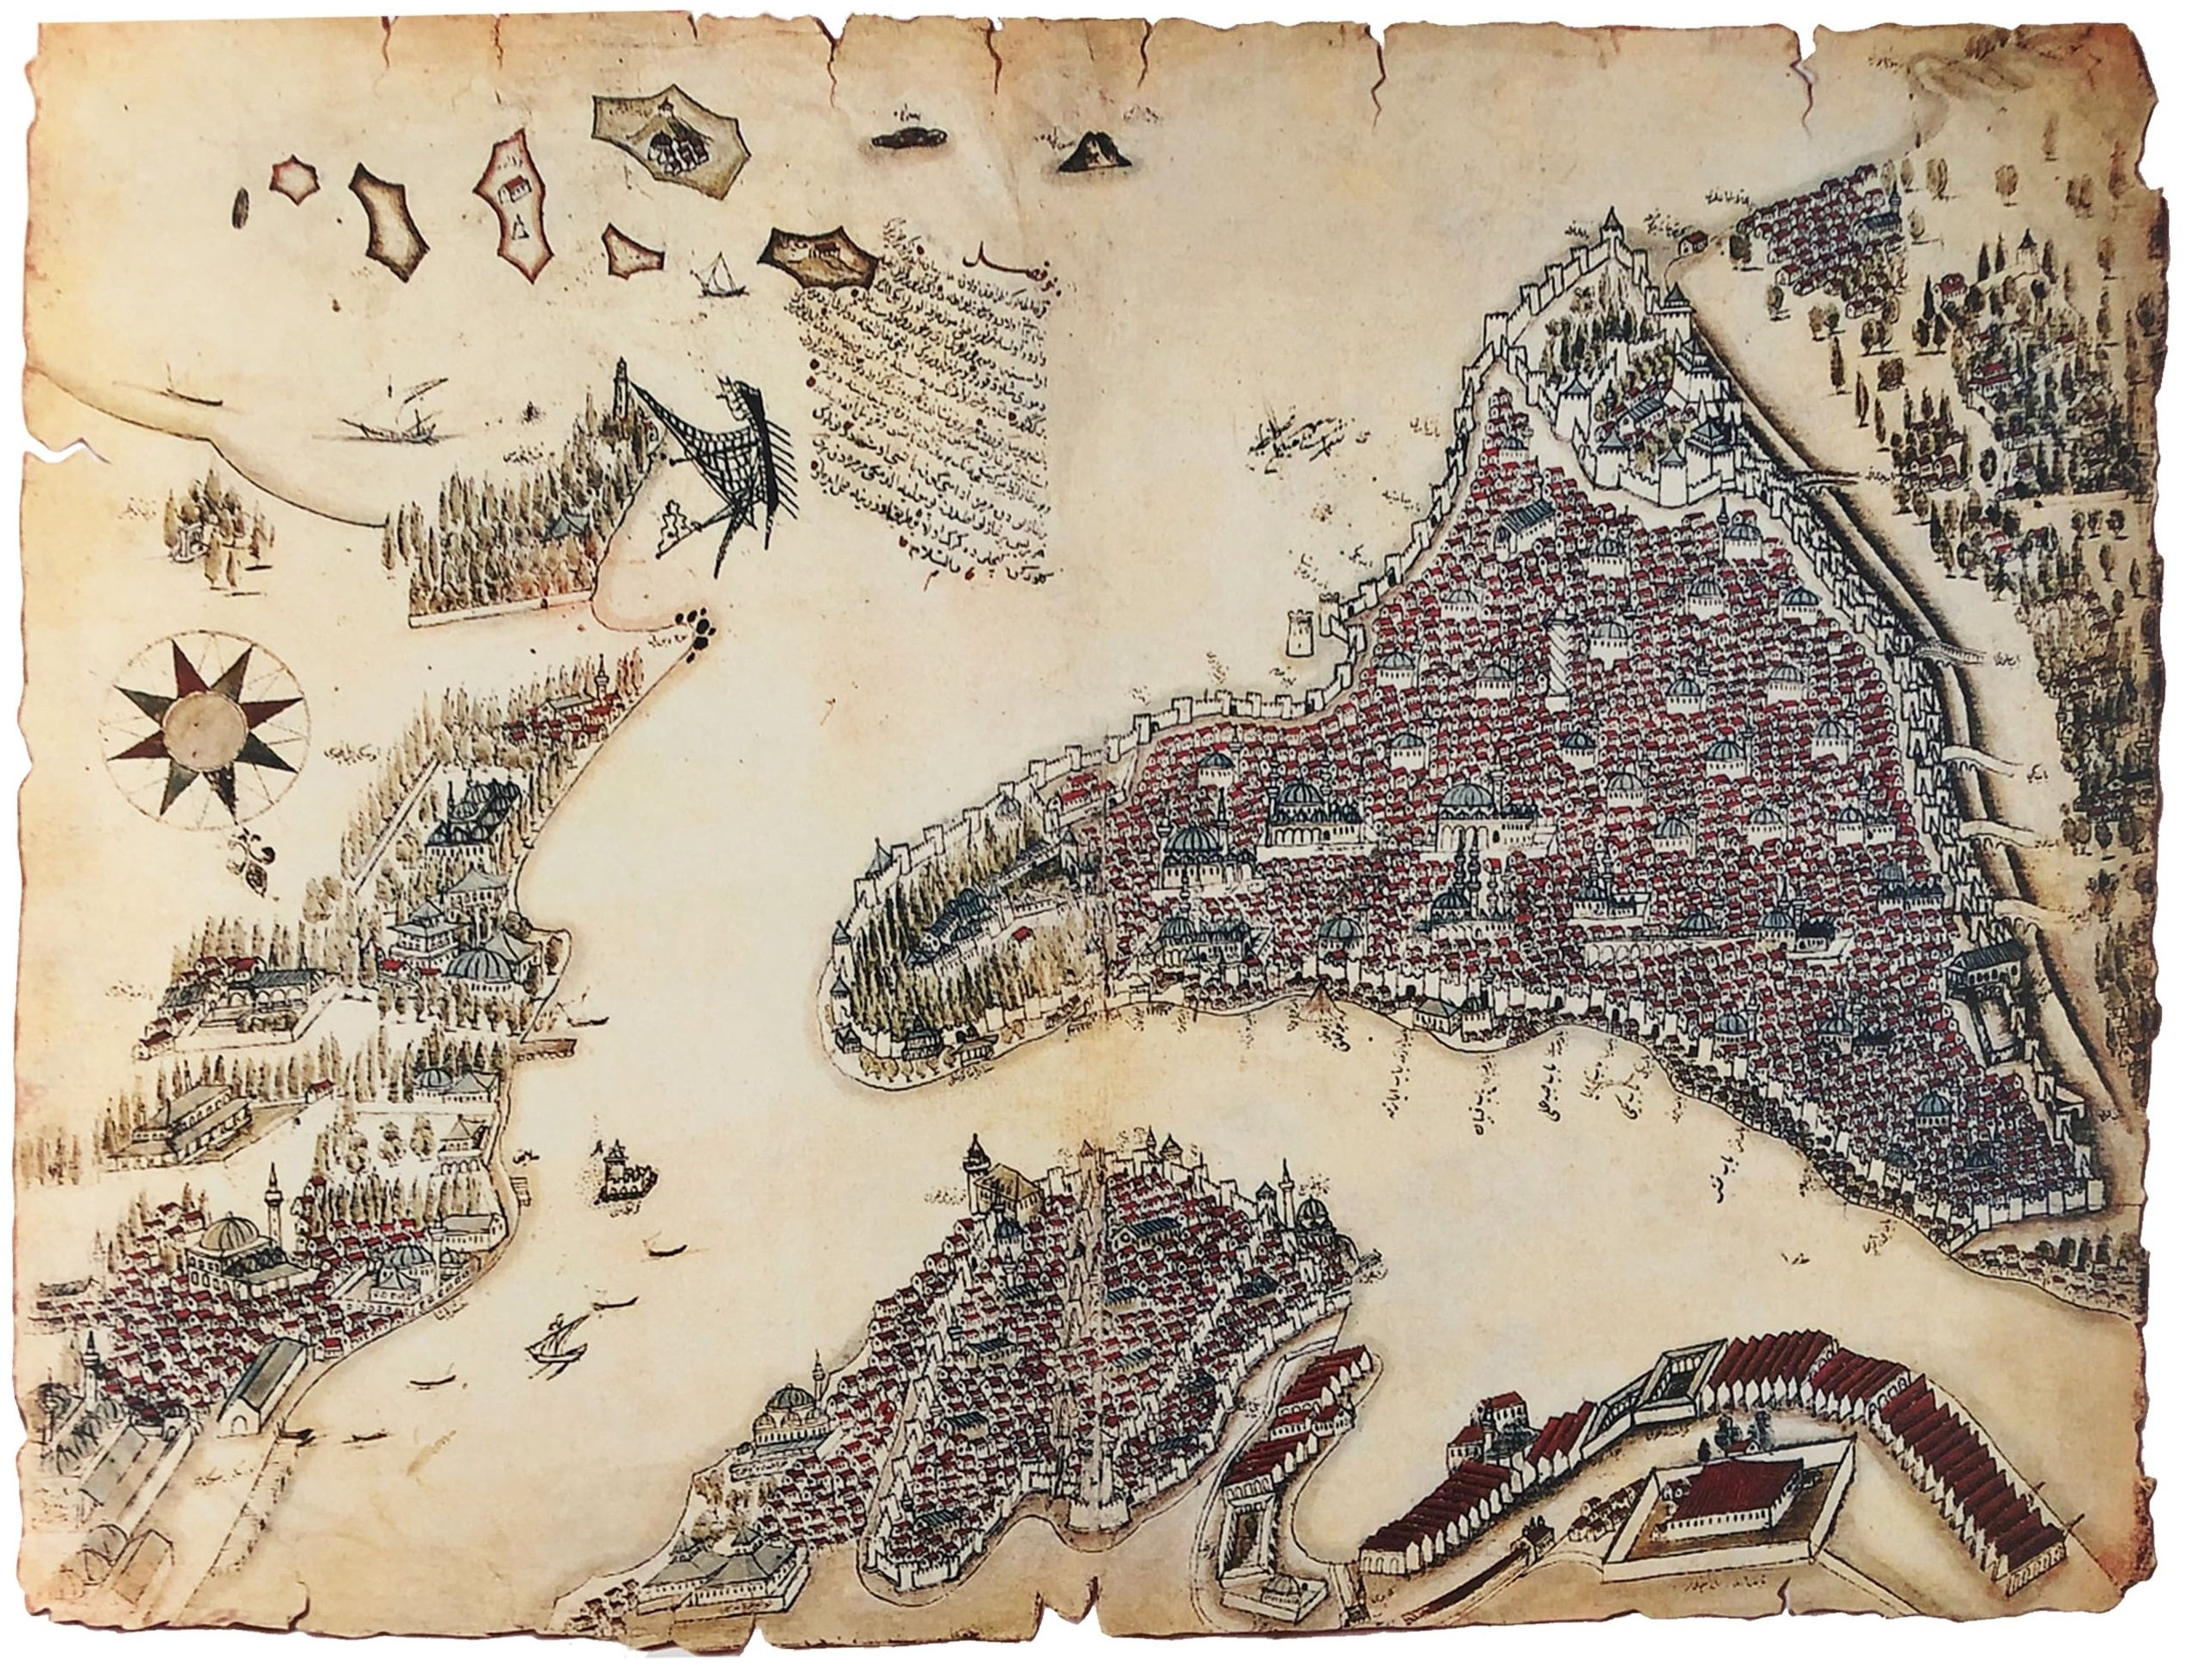 This antique engraving of Istanbul shows Yedikule Fortress on the top right-hand corner and its surrounding area.